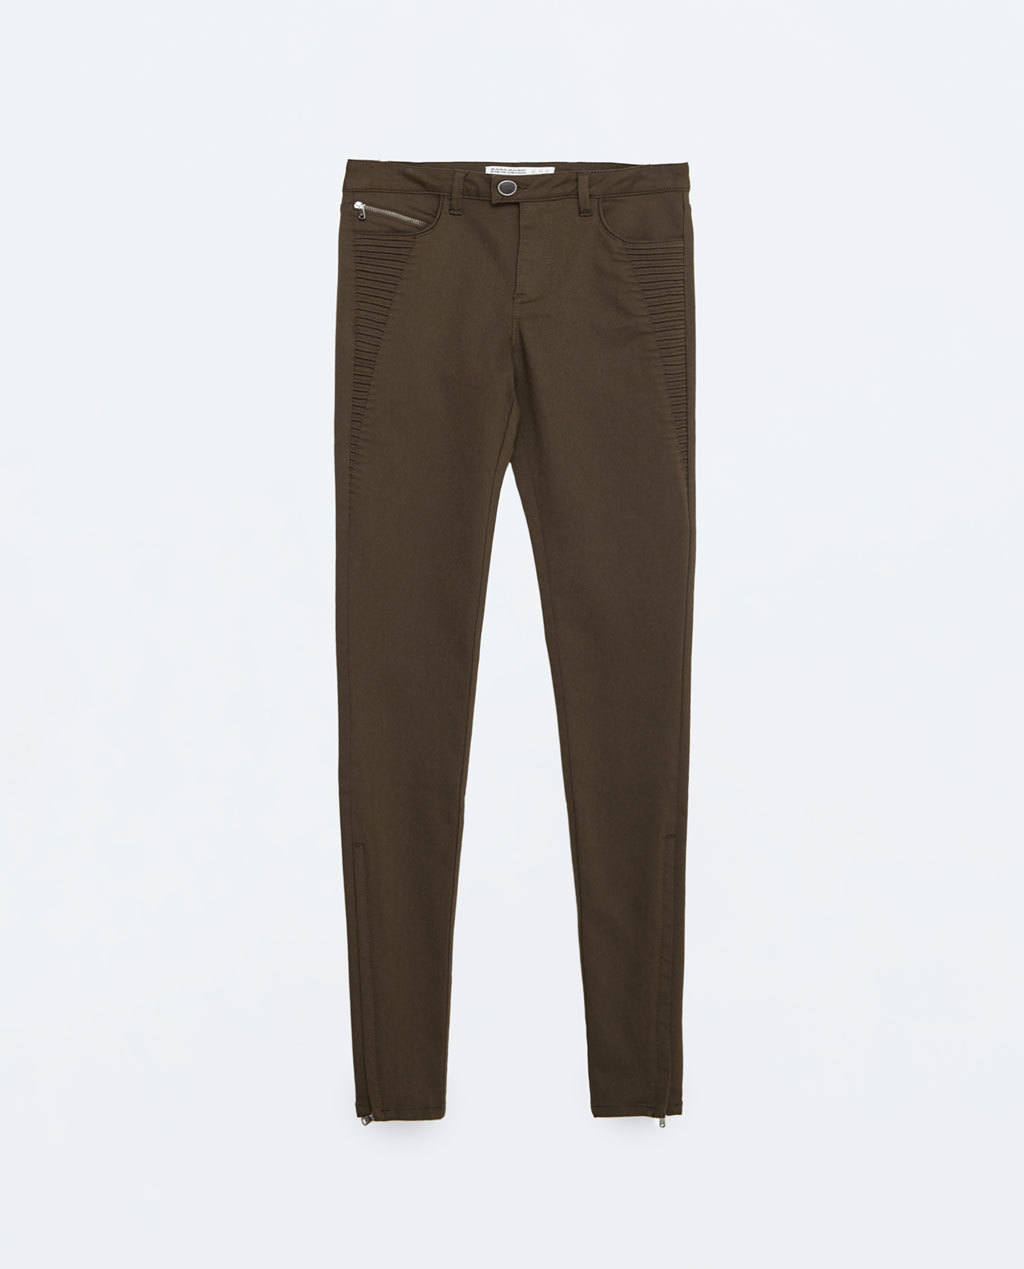 Mid Rise Power Stretch Trousers - length: standard; pattern: plain; waist: mid/regular rise; predominant colour: khaki; occasions: casual, creative work; fibres: cotton - stretch; fit: slim leg; pattern type: fabric; texture group: woven light midweight; style: standard; season: s/s 2016; wardrobe: basic